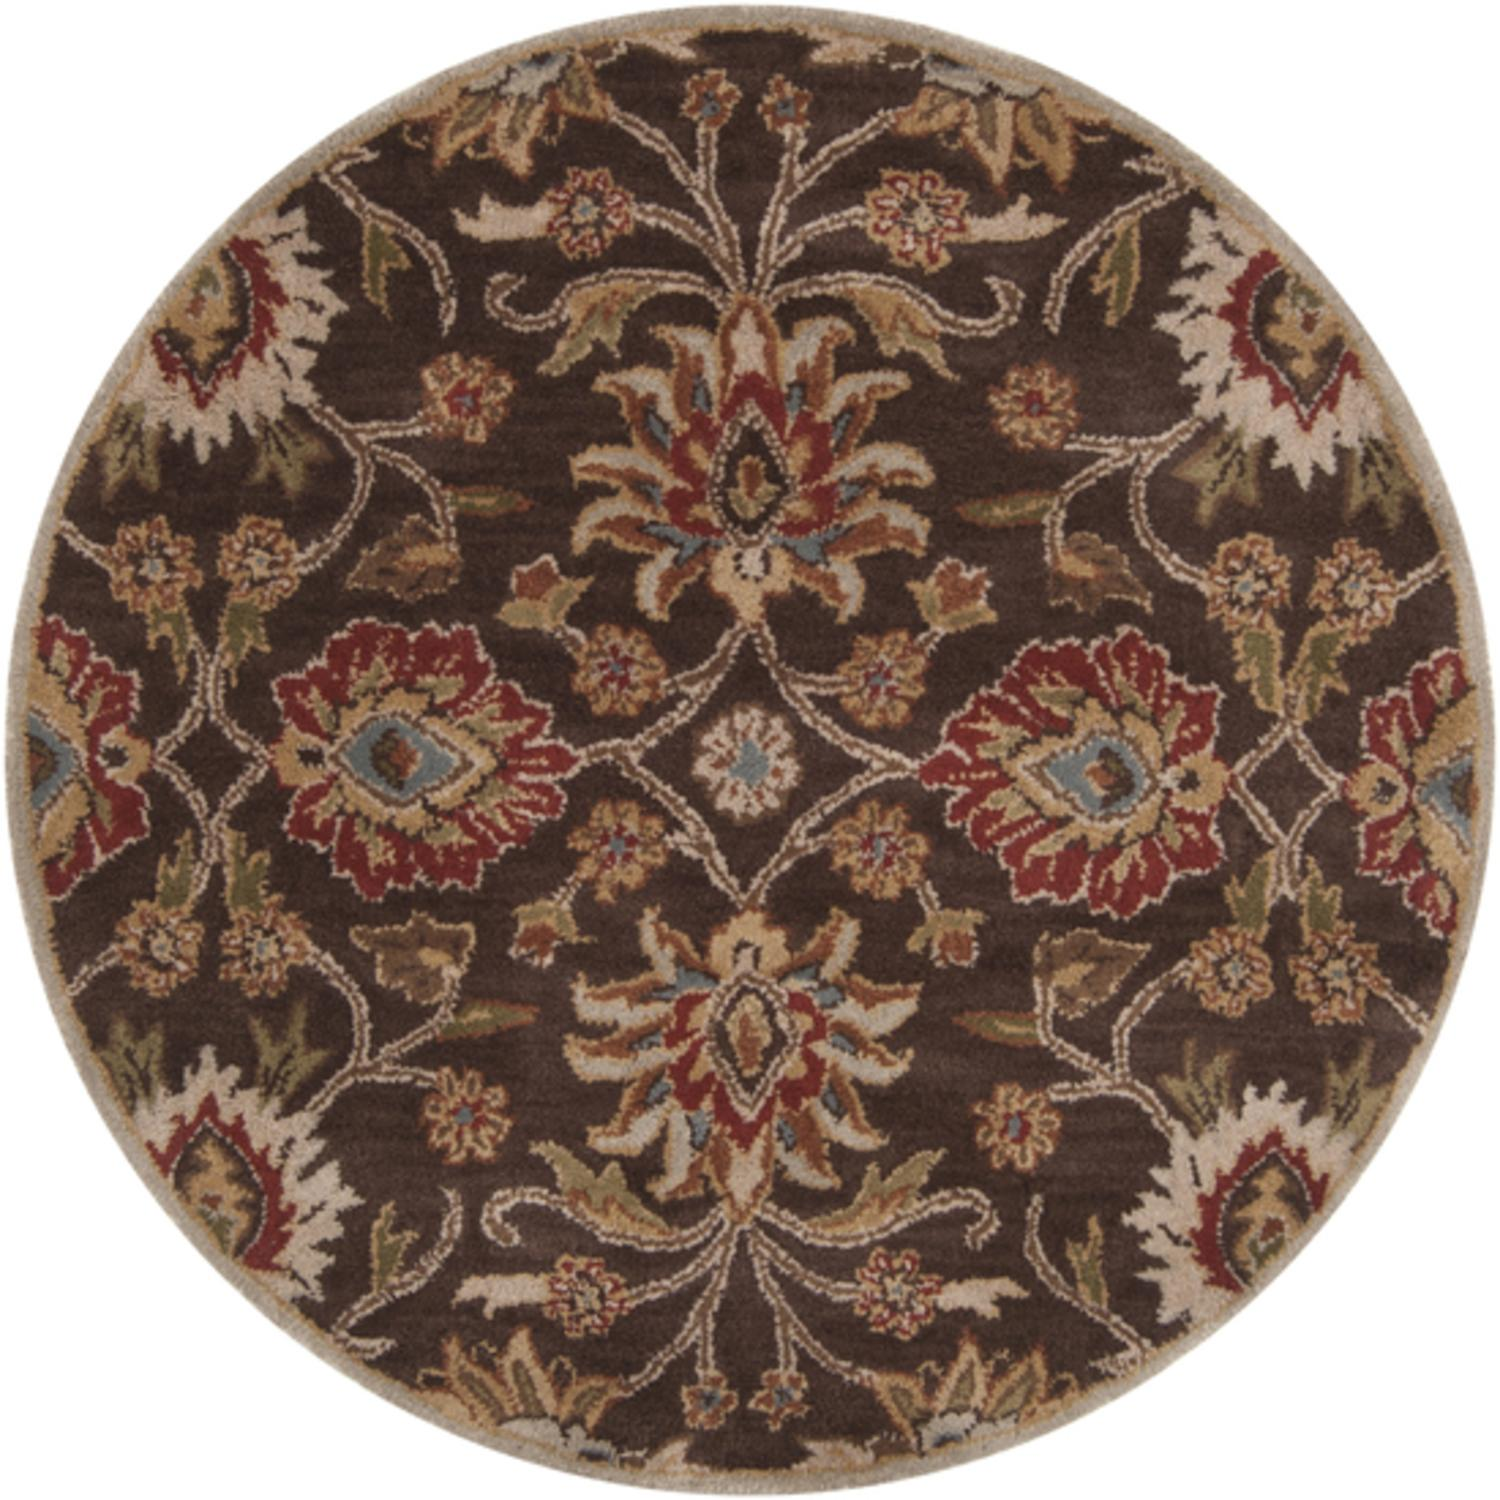 6' Octavia Tan and Russet Brown Hand Tufted Round Wool Area Throw Rug